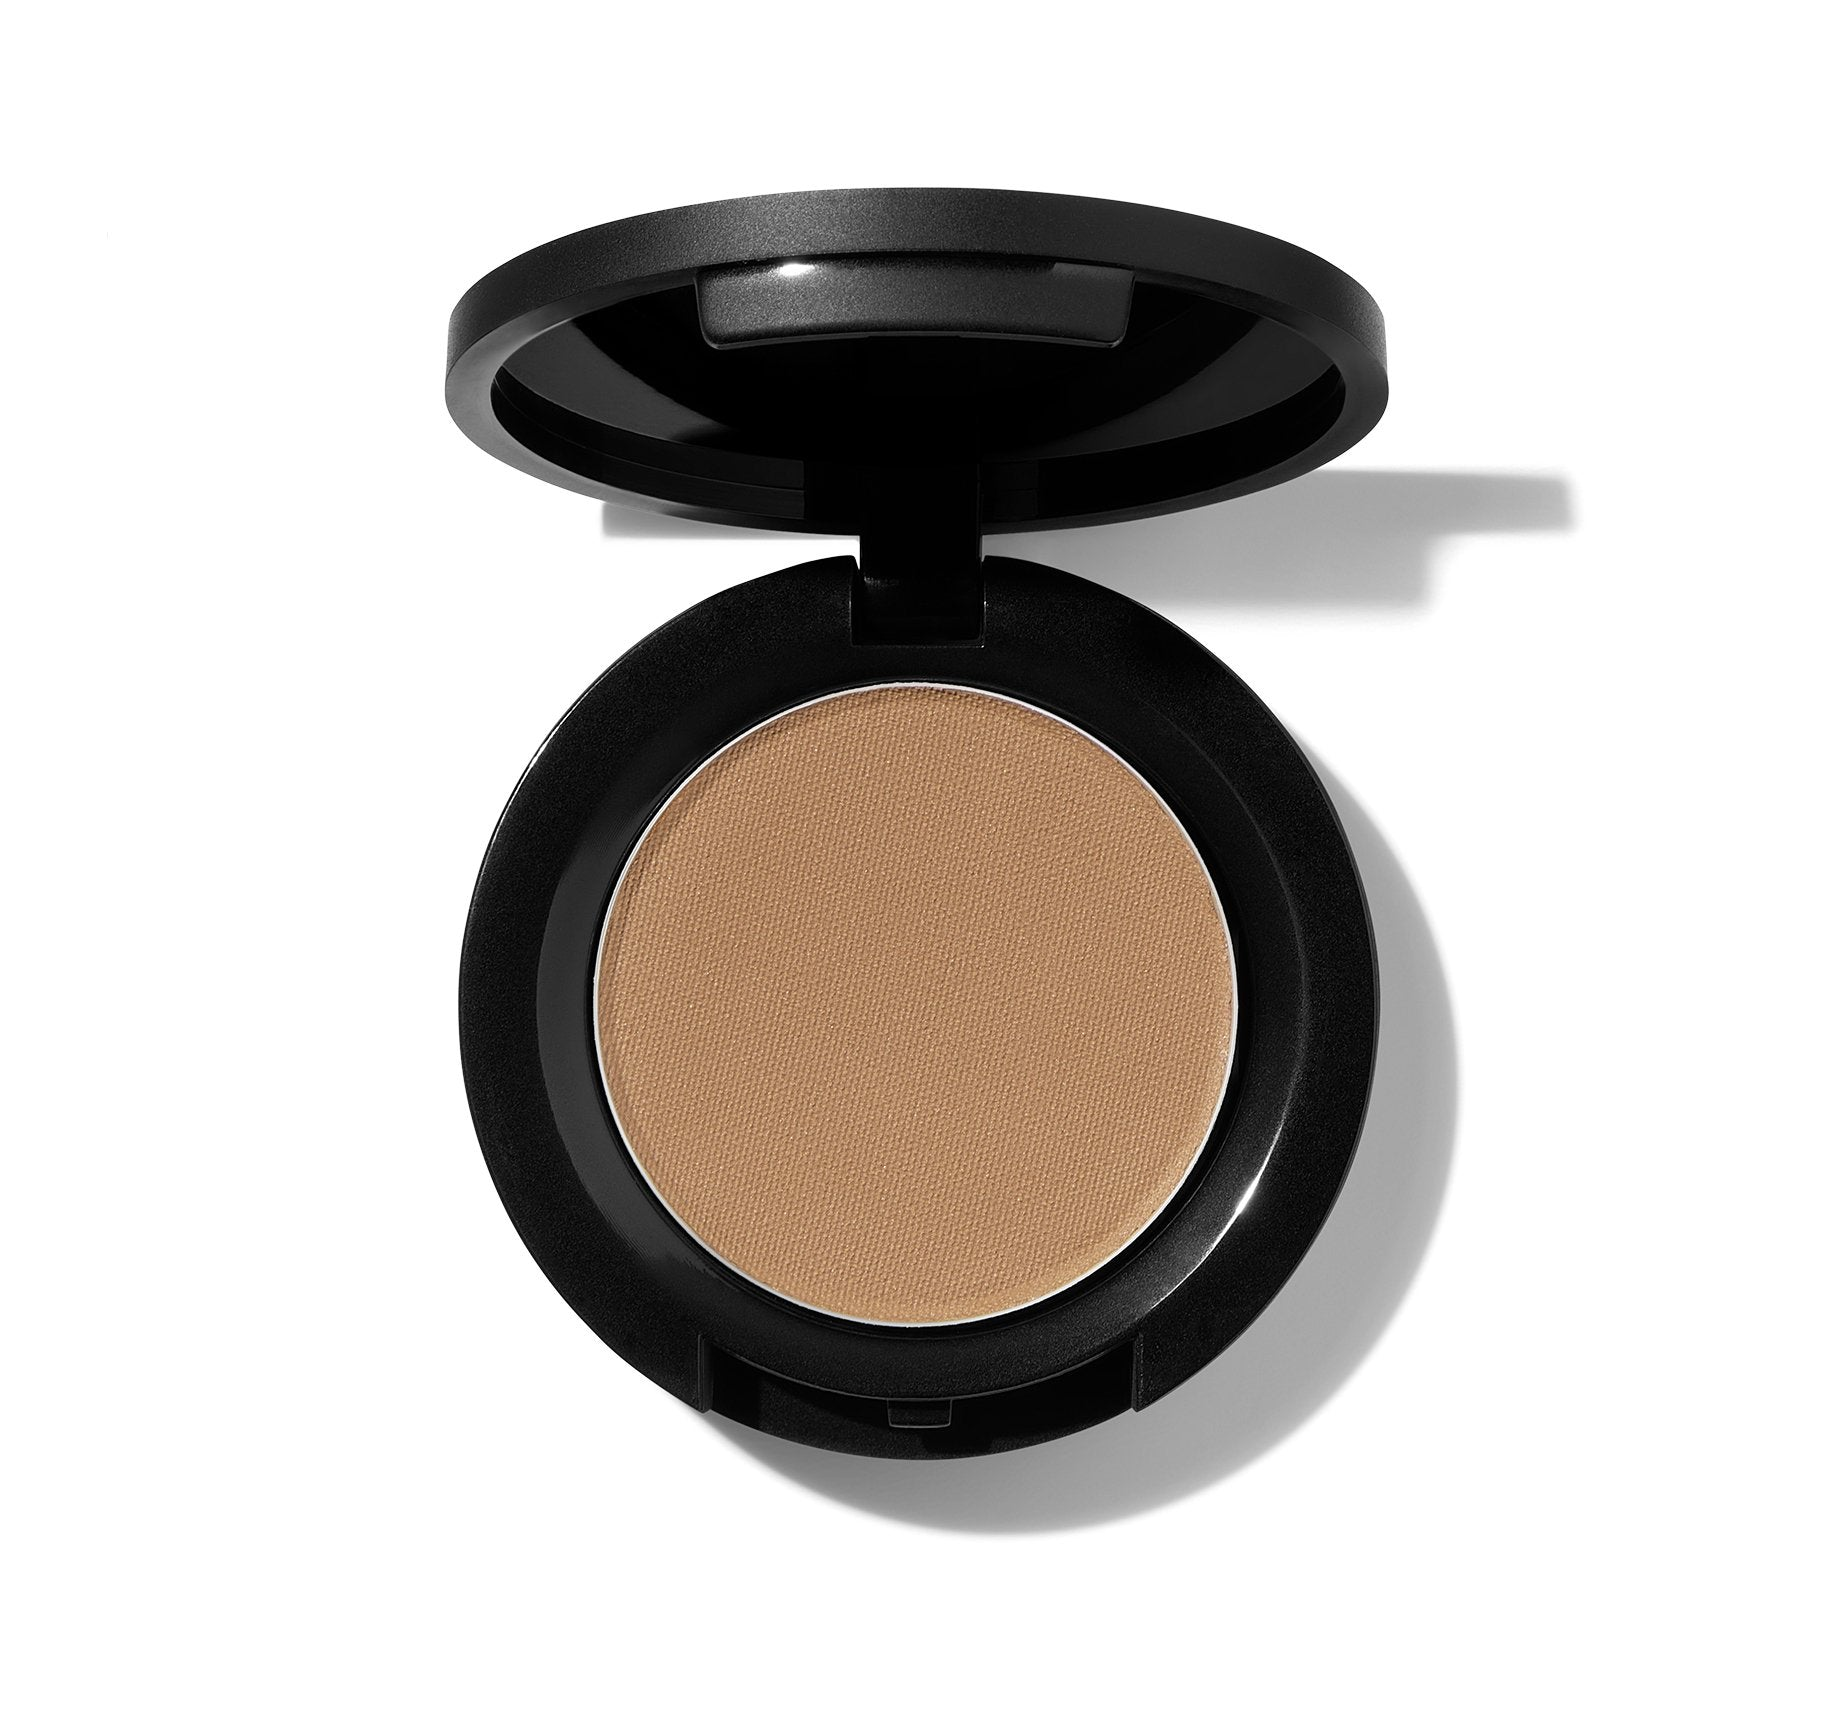 BROW POWDER - MACADAMIA, view larger image